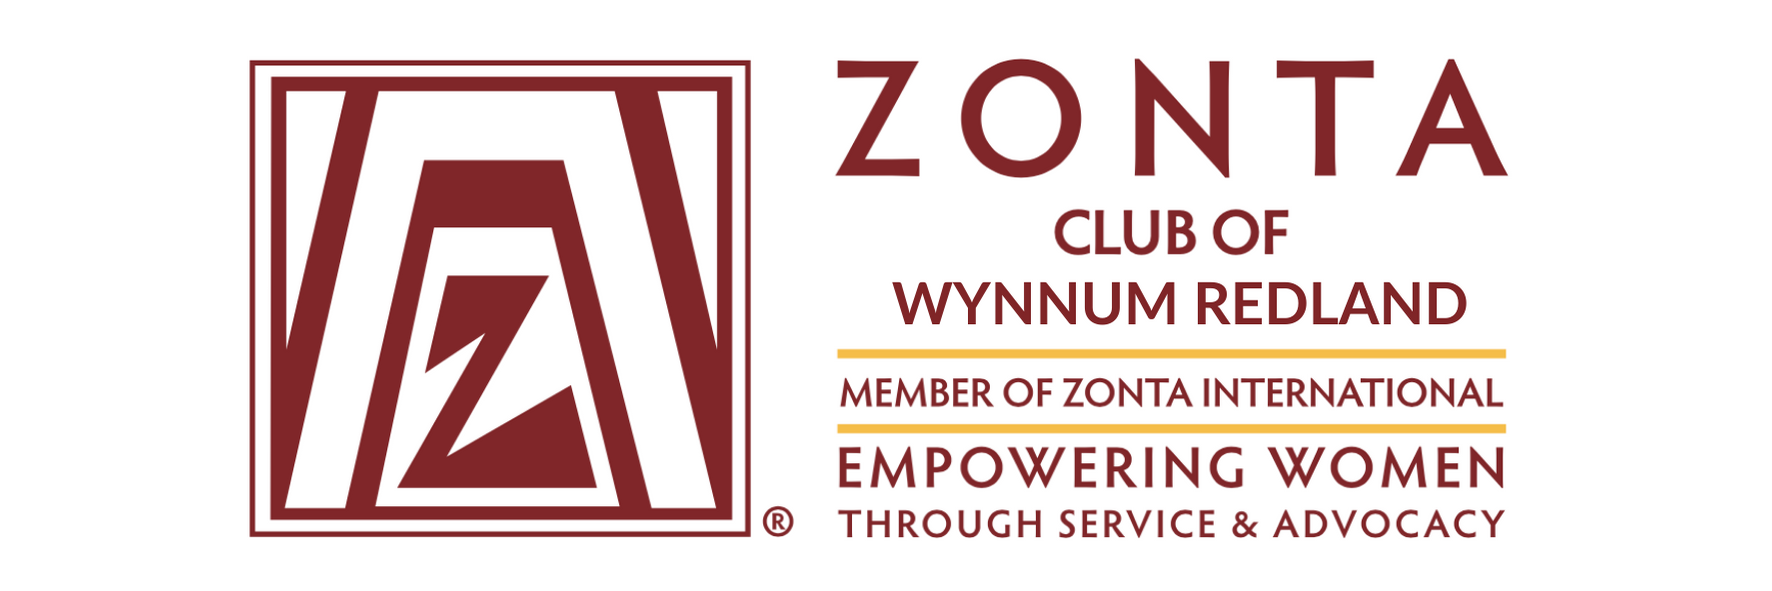 Zonta club of Wynnum Redland